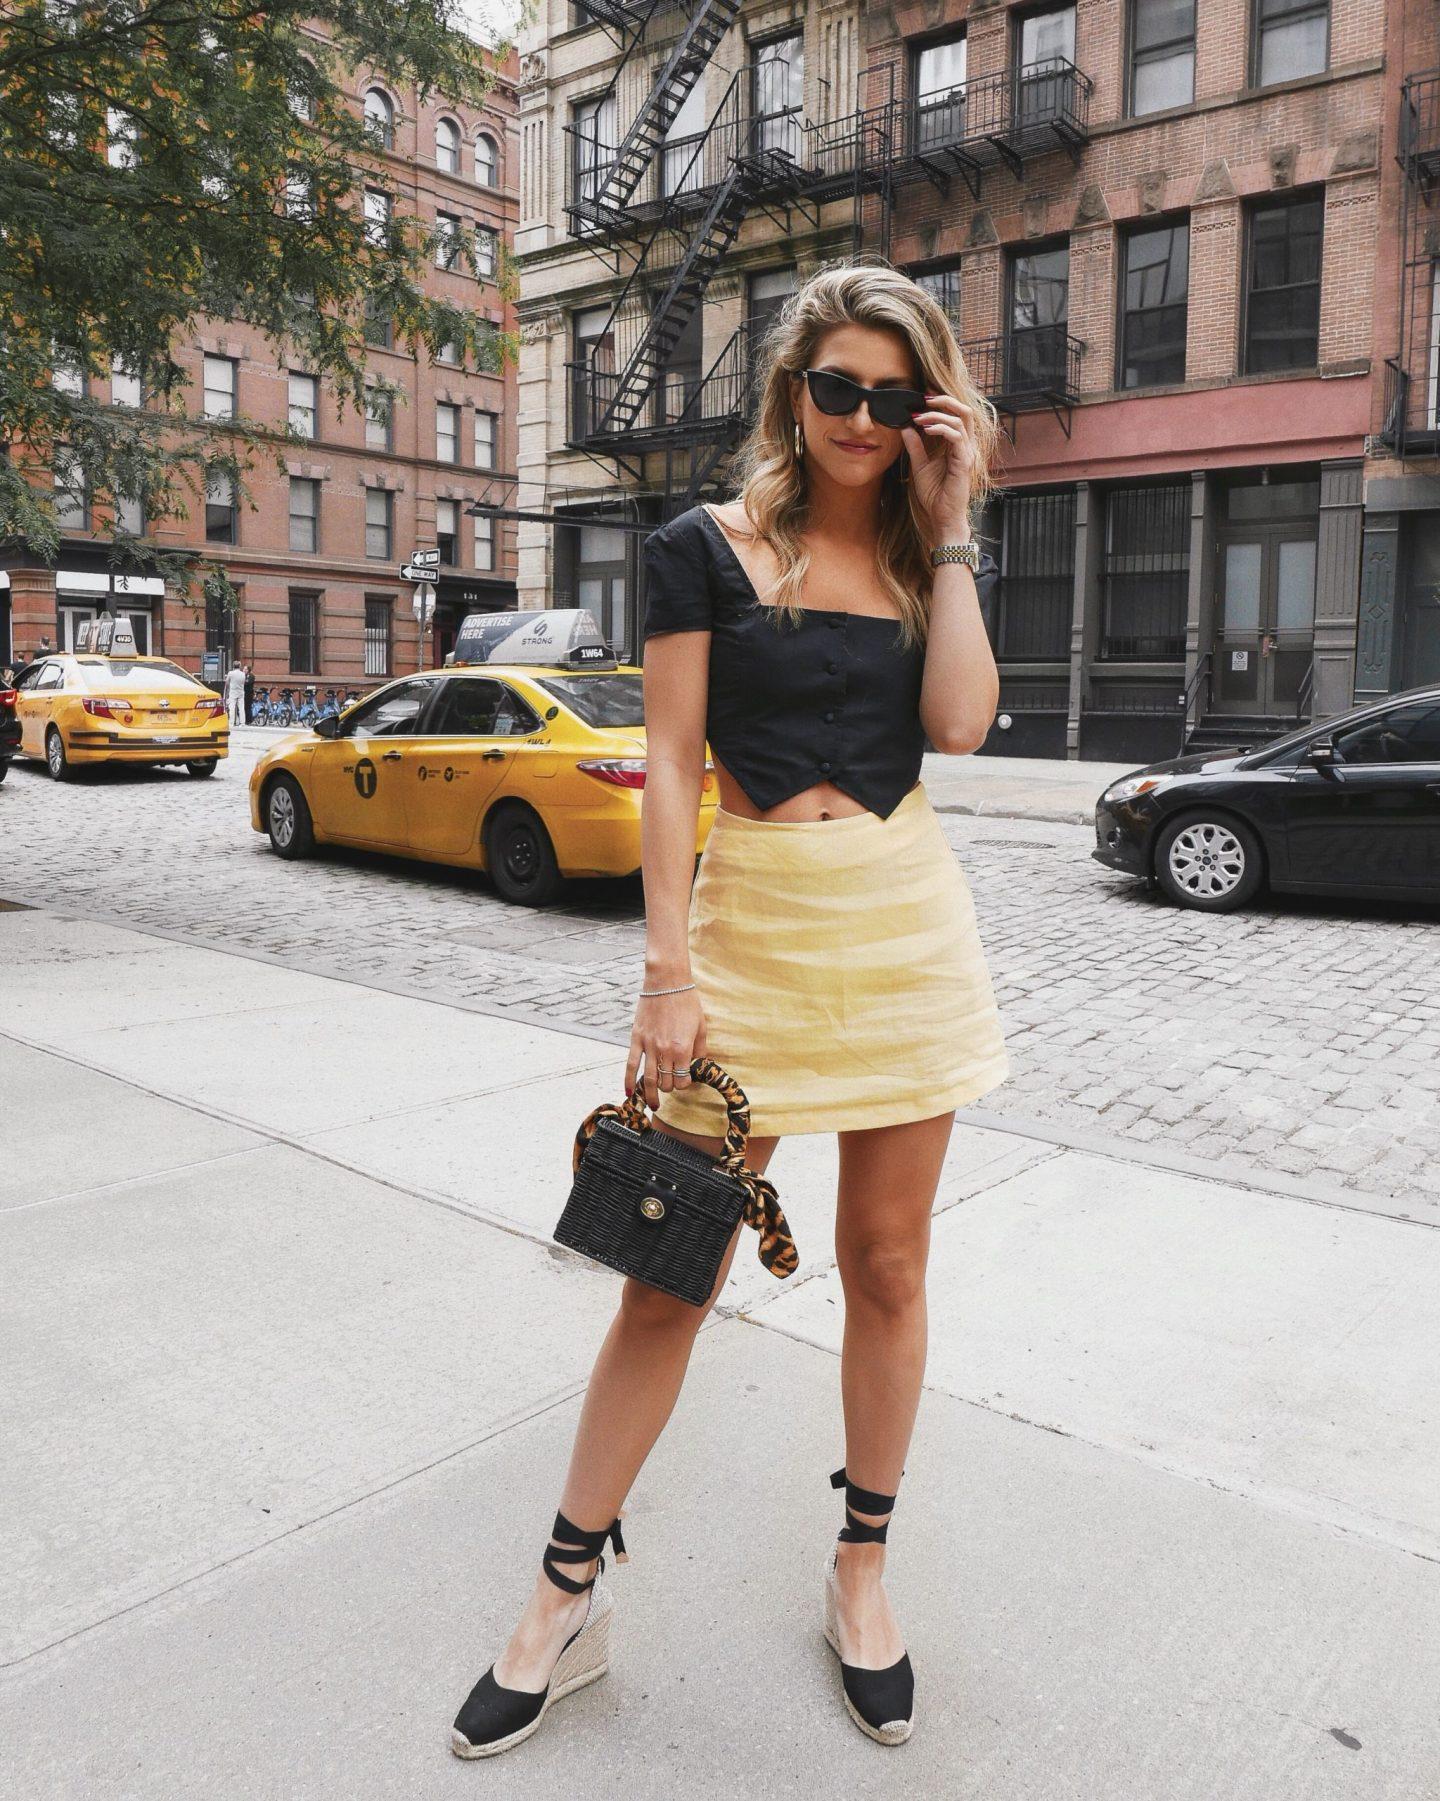 Cassandra DiMicco, Cass DiMicco, Dressed For Dreams, NYC, New York City, New York, Street Style NYC, Street Style 2018, NYC Street Style Street Style Outfits, 2018 Trends, NYC Fashion Blogger, reformation, dolls kill, yellow skirt, espadrille wedges, castaner, Zara, woven bag, straw bag, ysl scarf, scarf on bag trend, le specs, tribeca